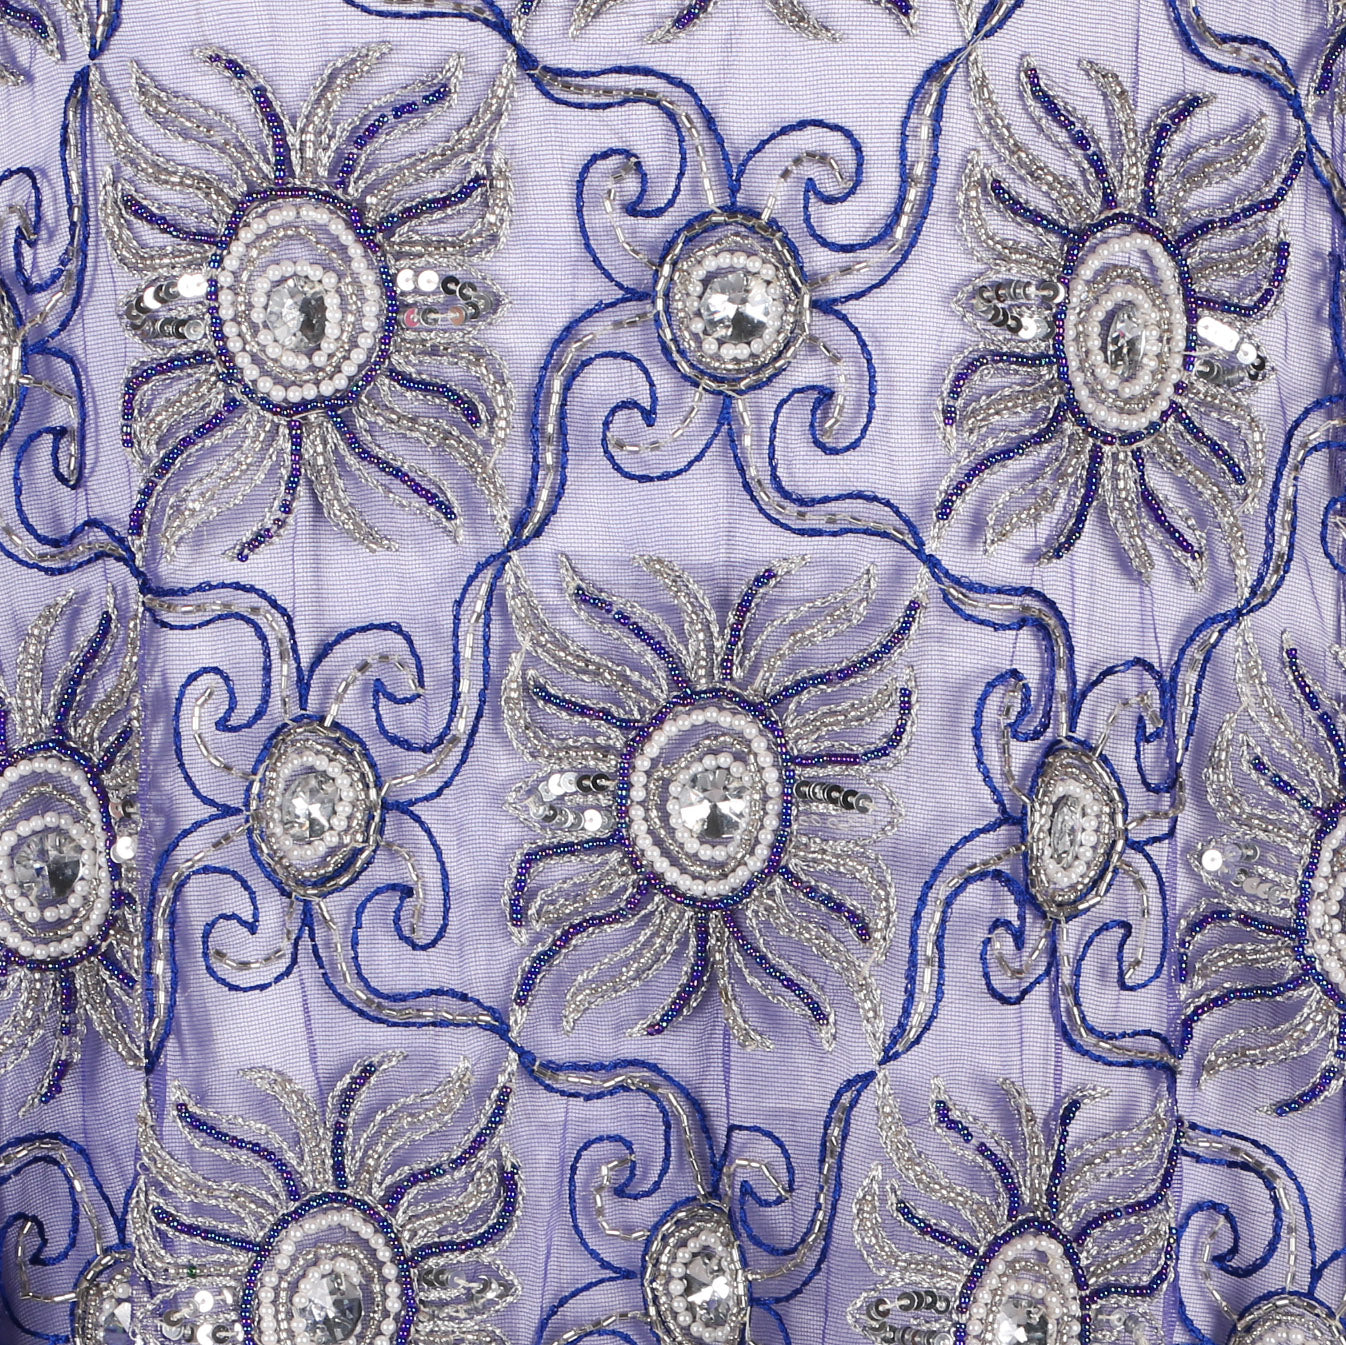 Hand Embroidered Fabric Design # 4025 - Royal Blue - 5 Yard Piece